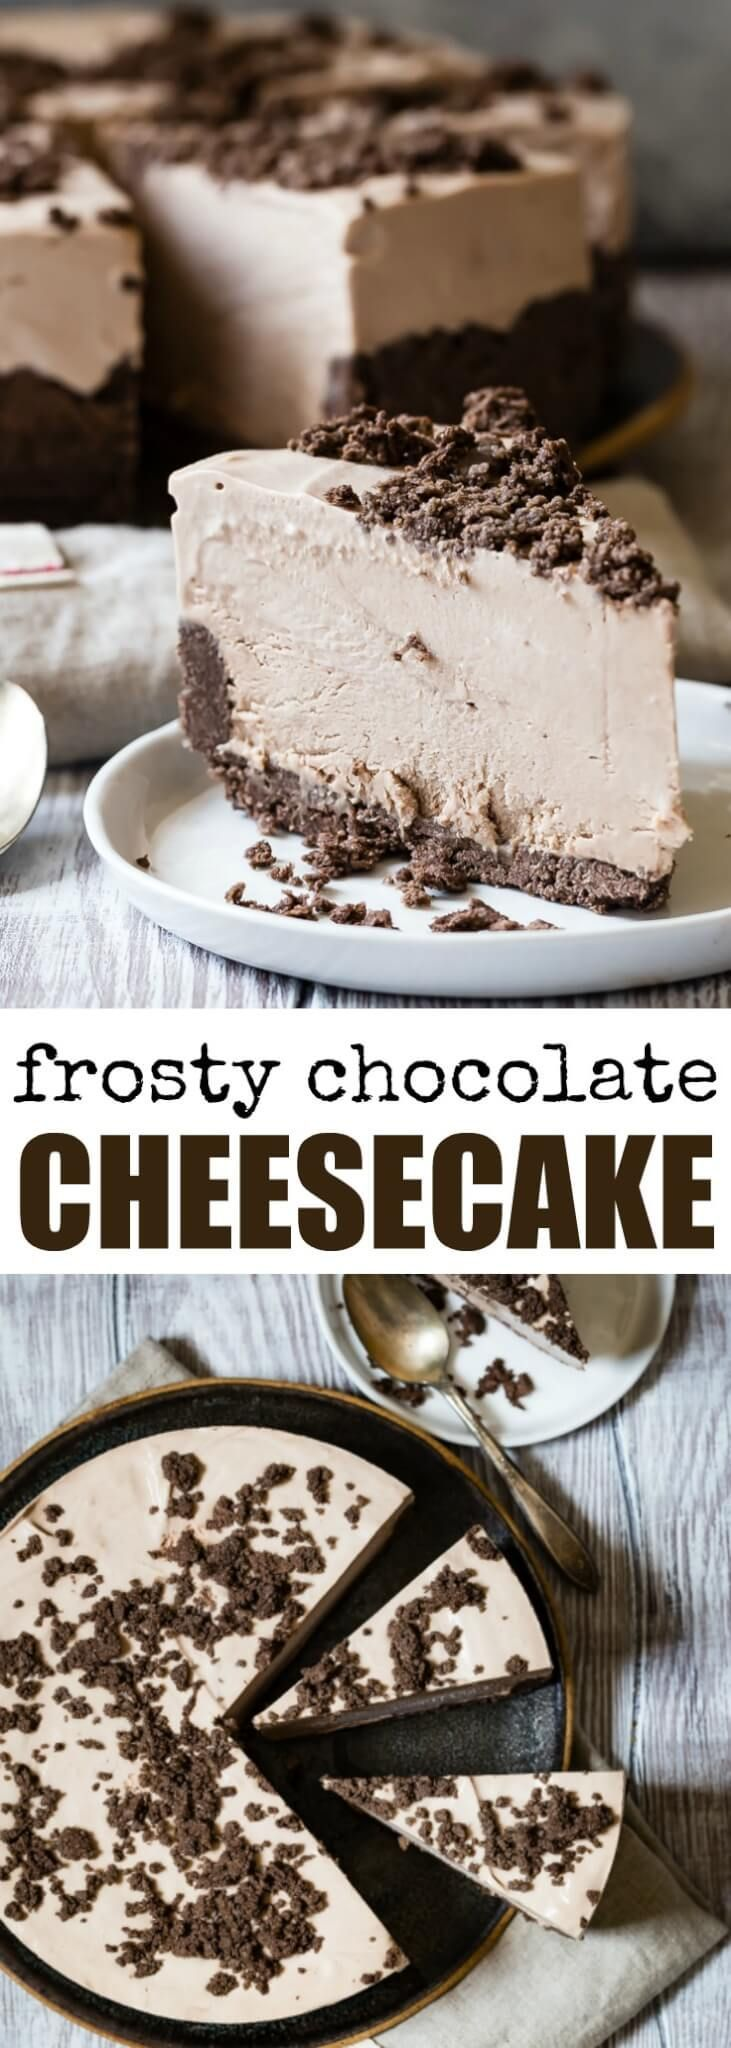 My grandma's famous Frosty Chocolate Cheesecake ha…#cheesecake #chocolate #dessert